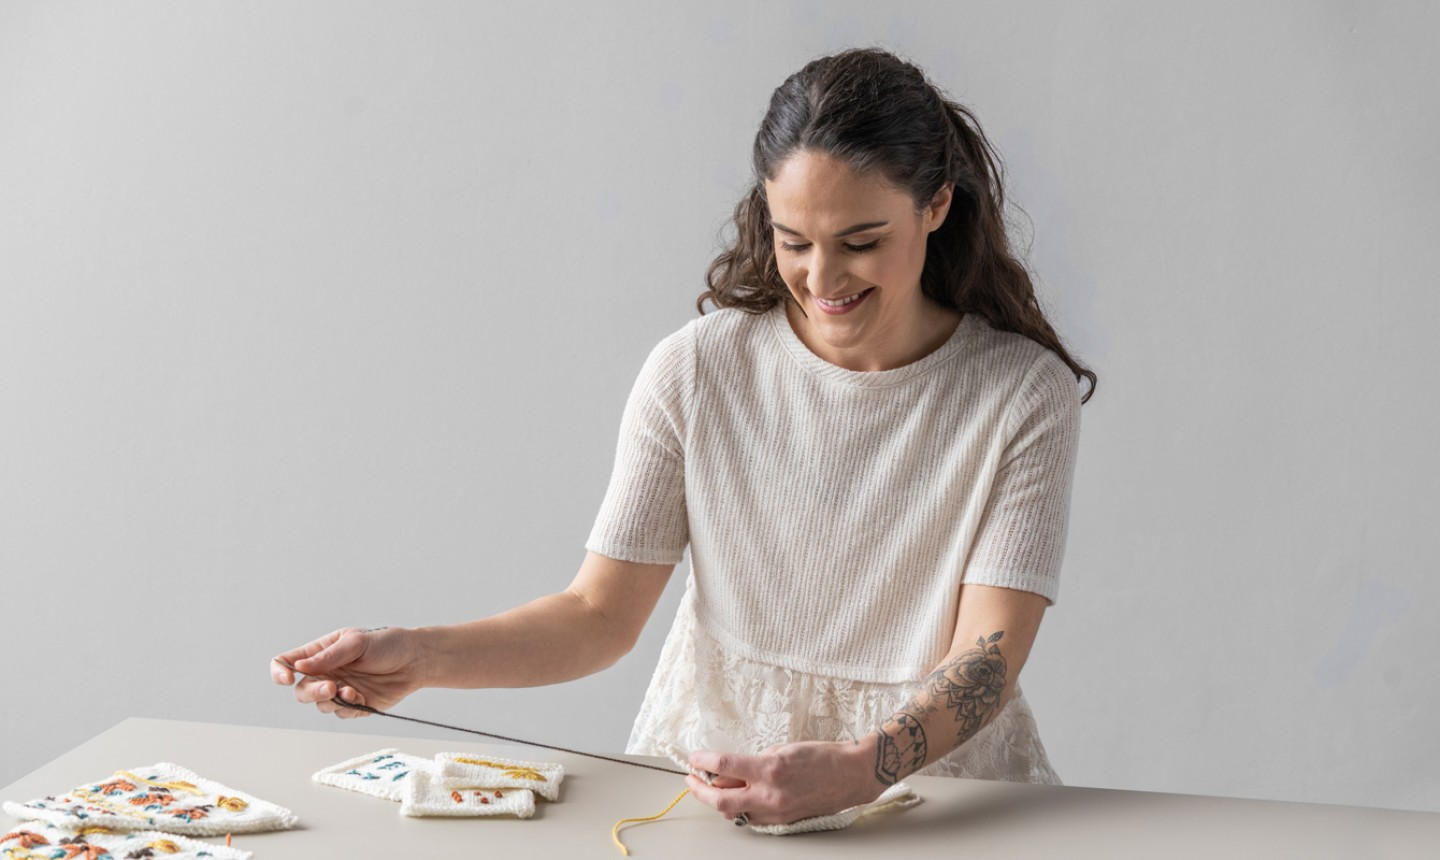 annie lupton embroidering knit sweater